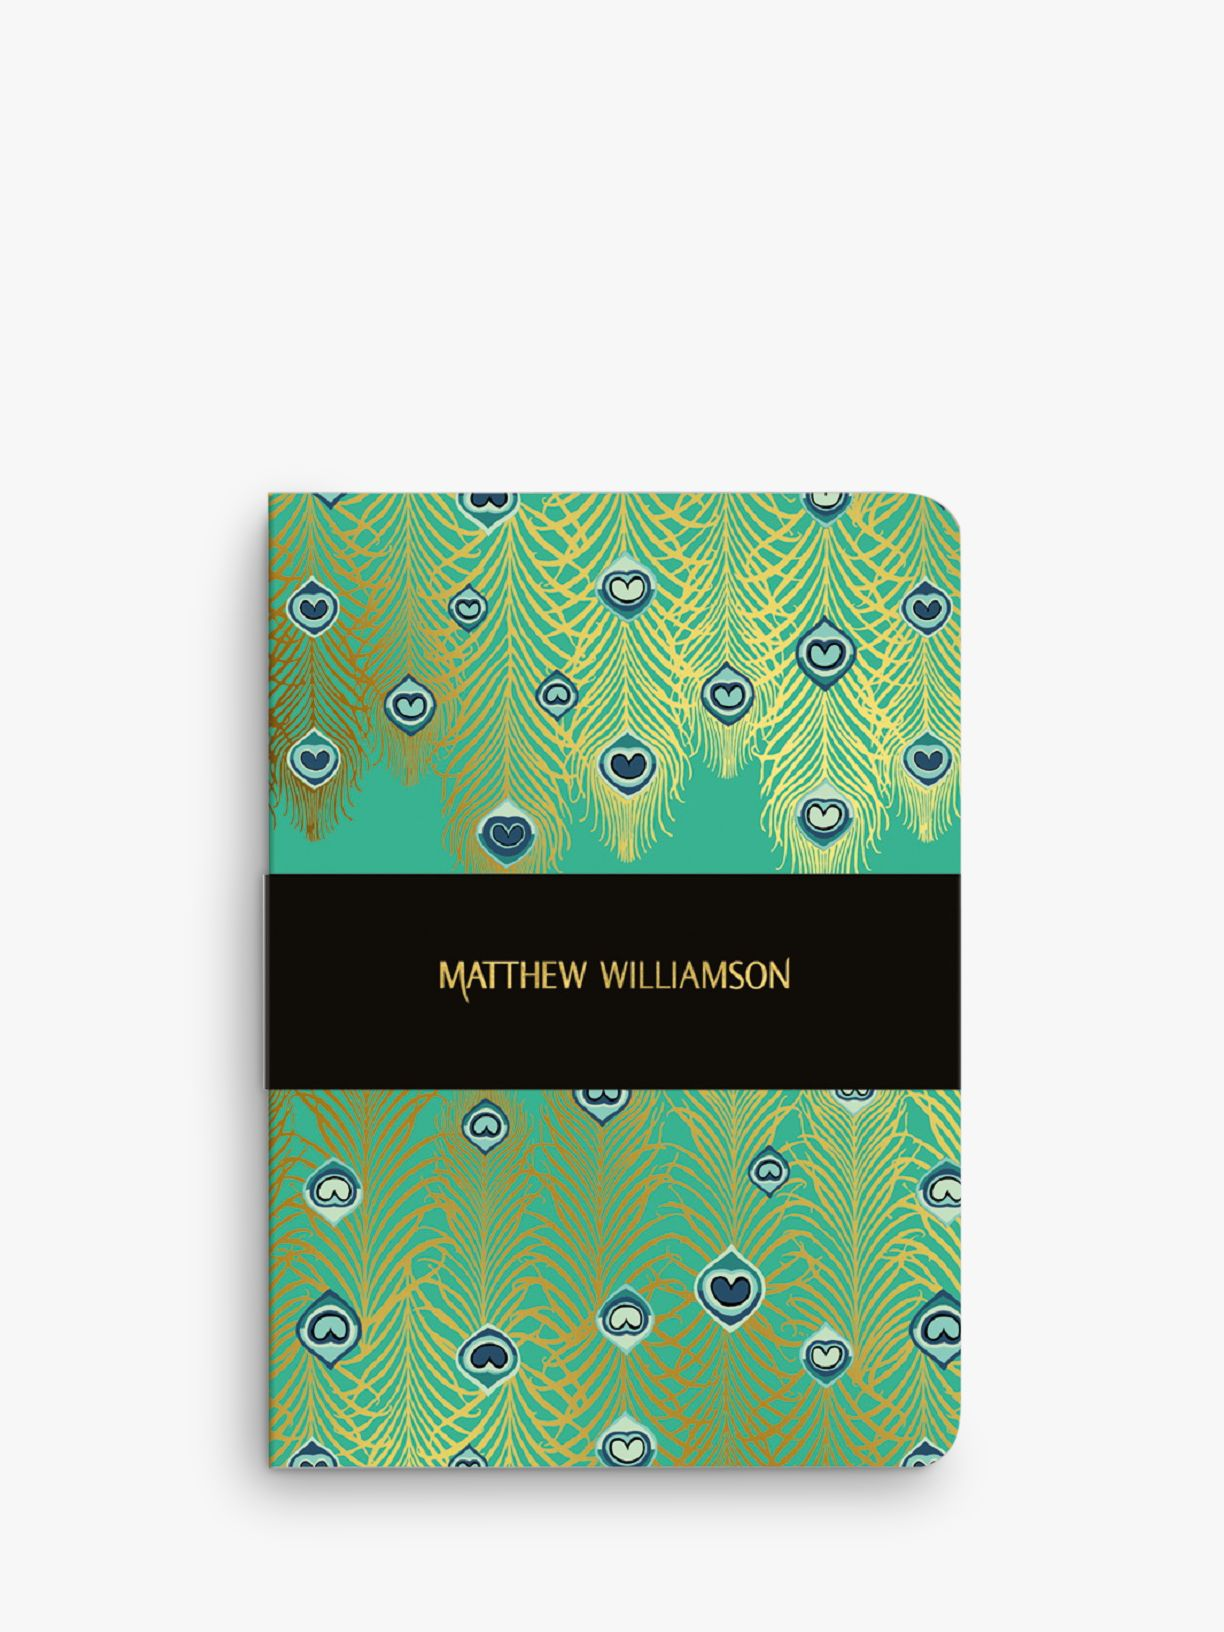 Museums & Galleries Matthew Williamson A5 Jade Peacock Notebook